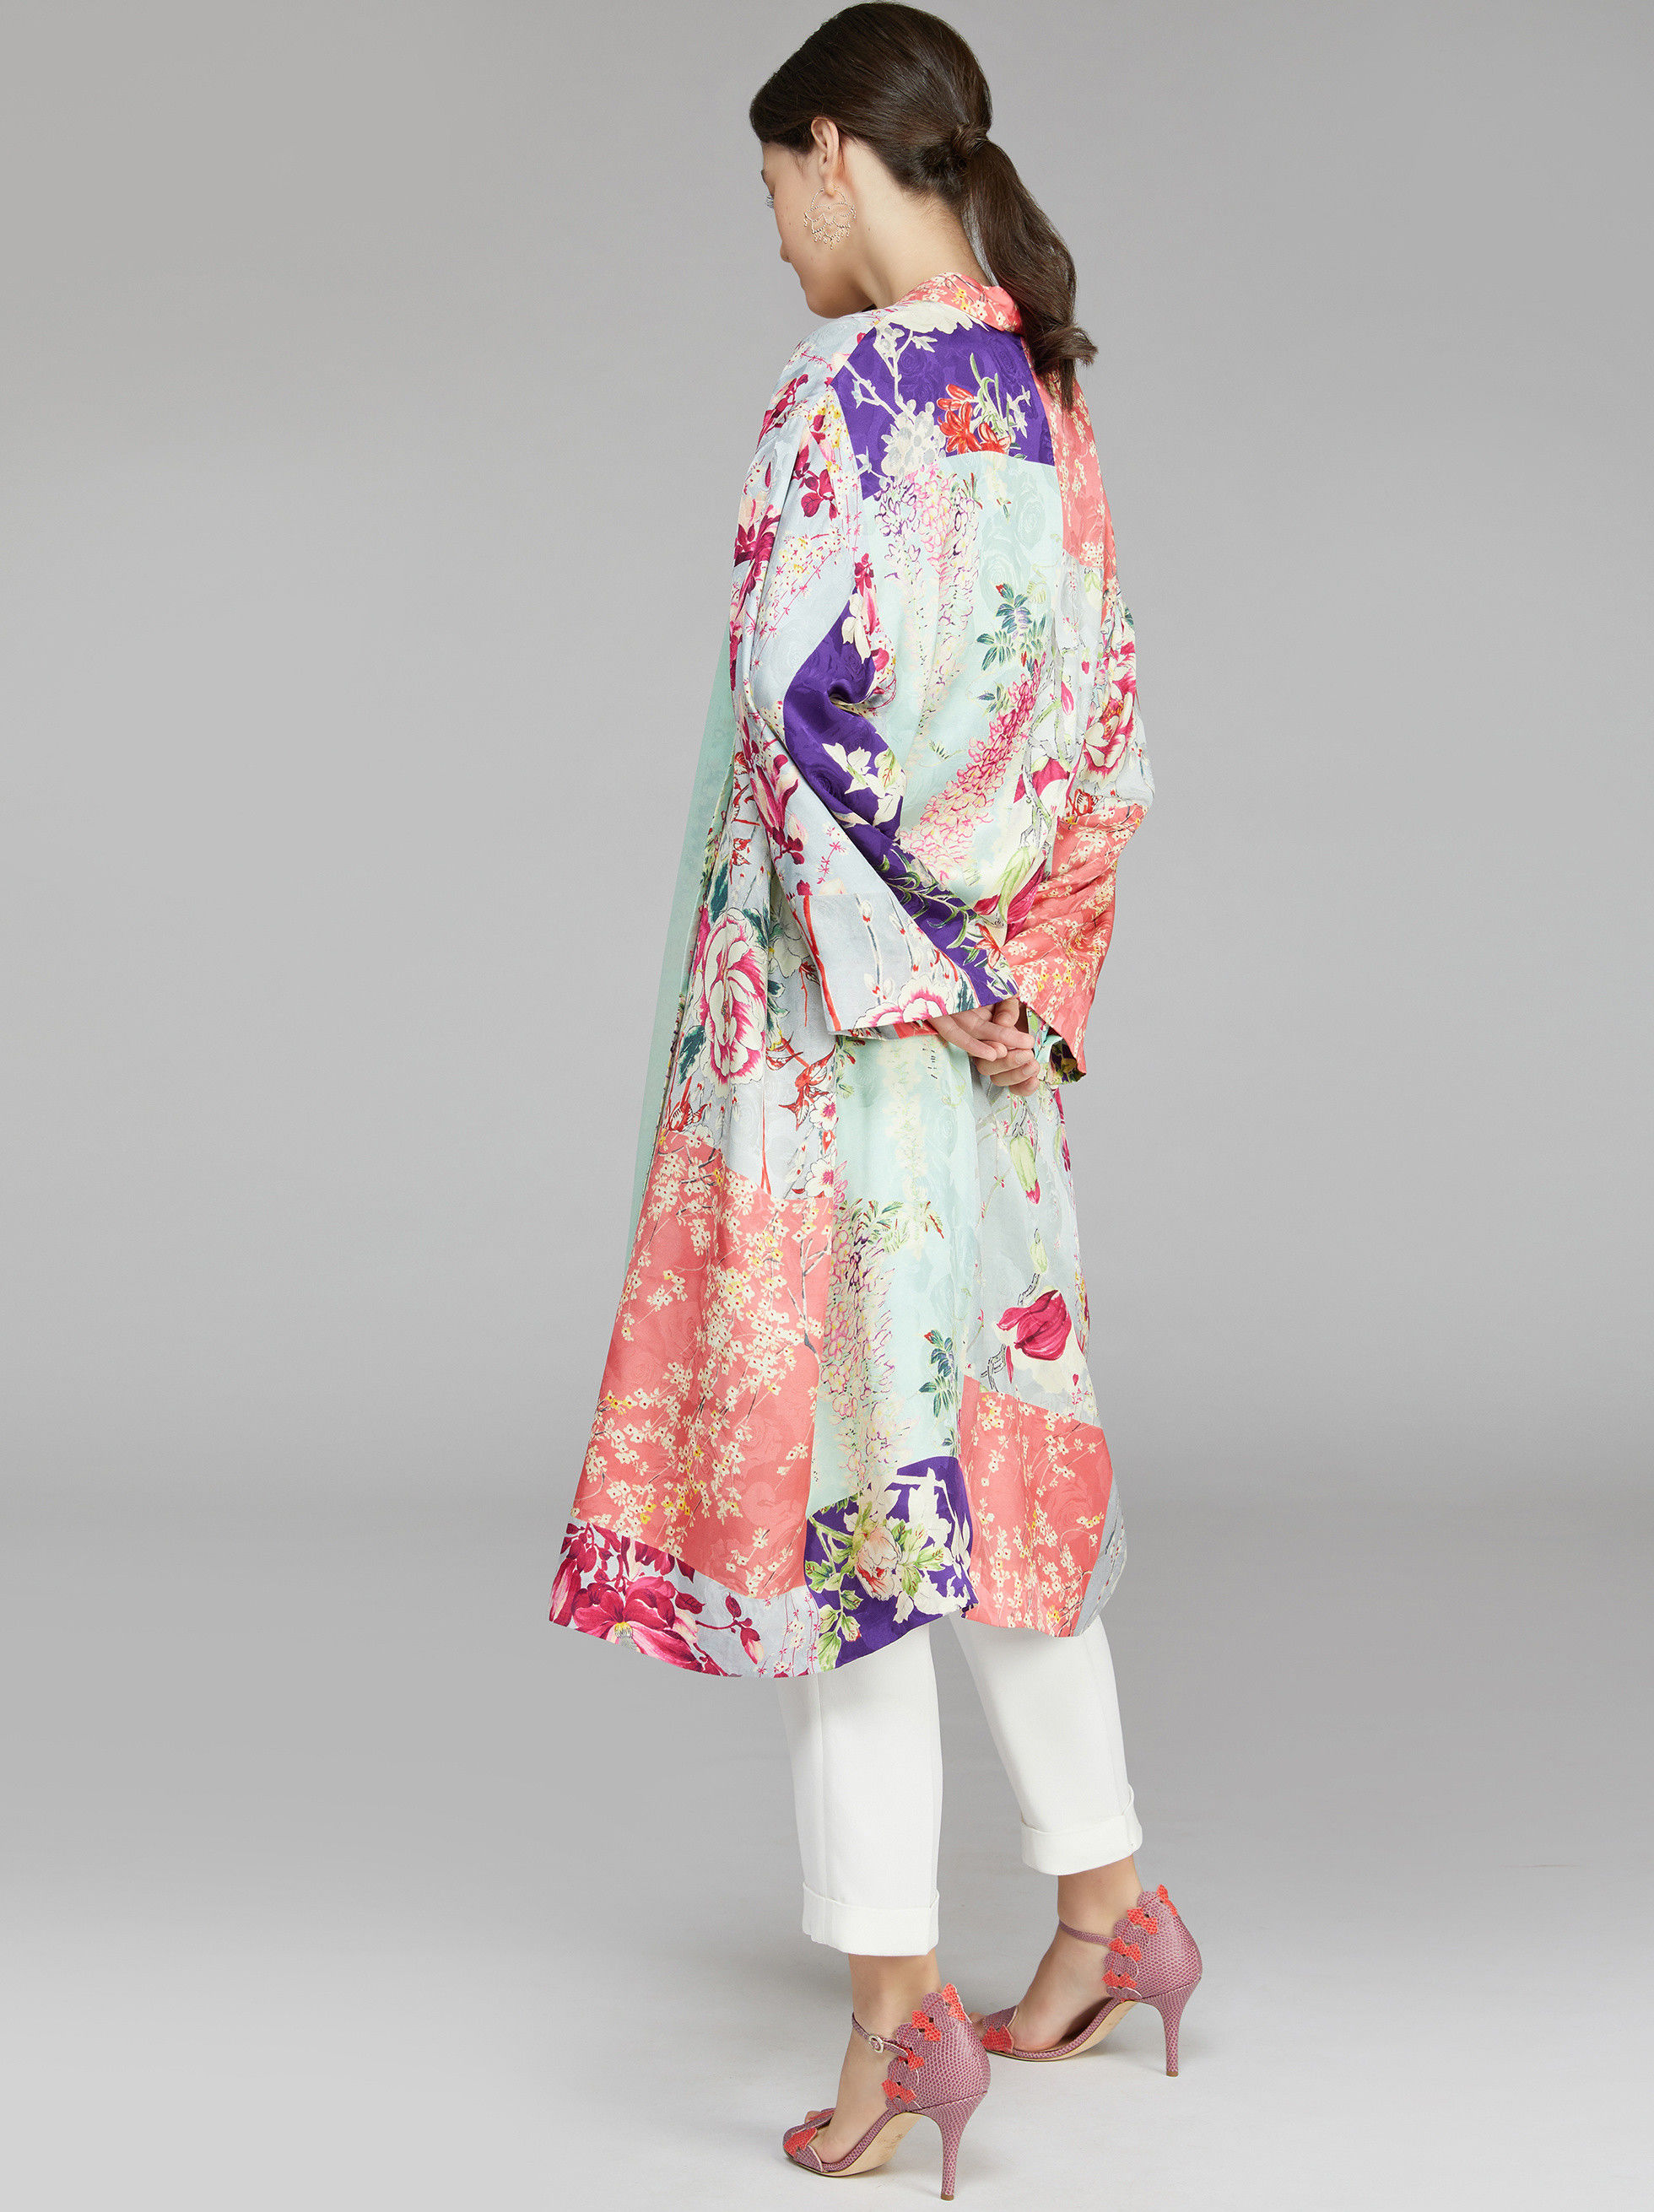 LIGHT JACQUARD COAT WITH FLORAL PRINT